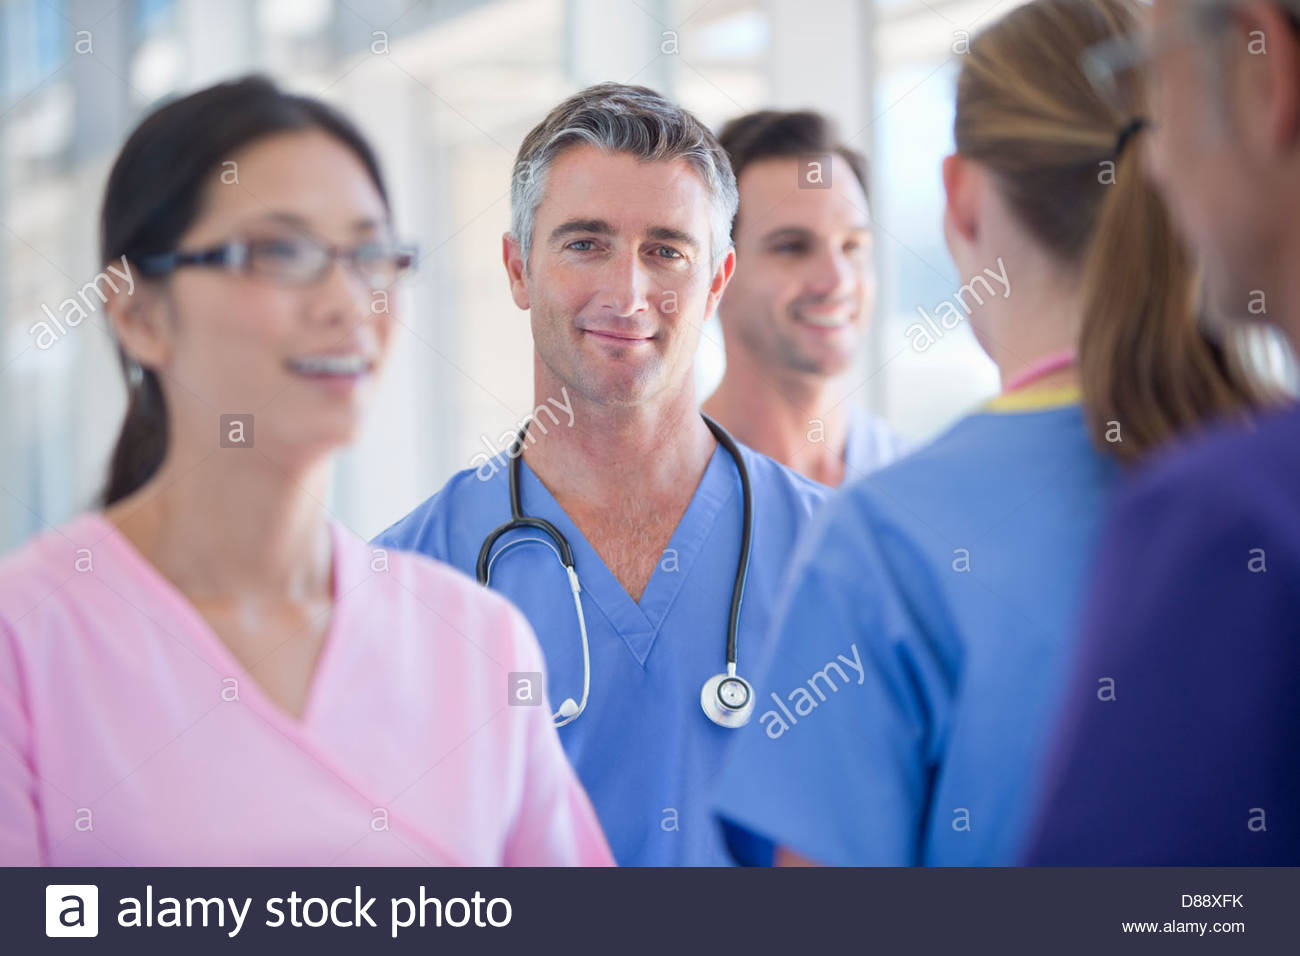 Portrait of smiling doctor among co-workers - Stock Image